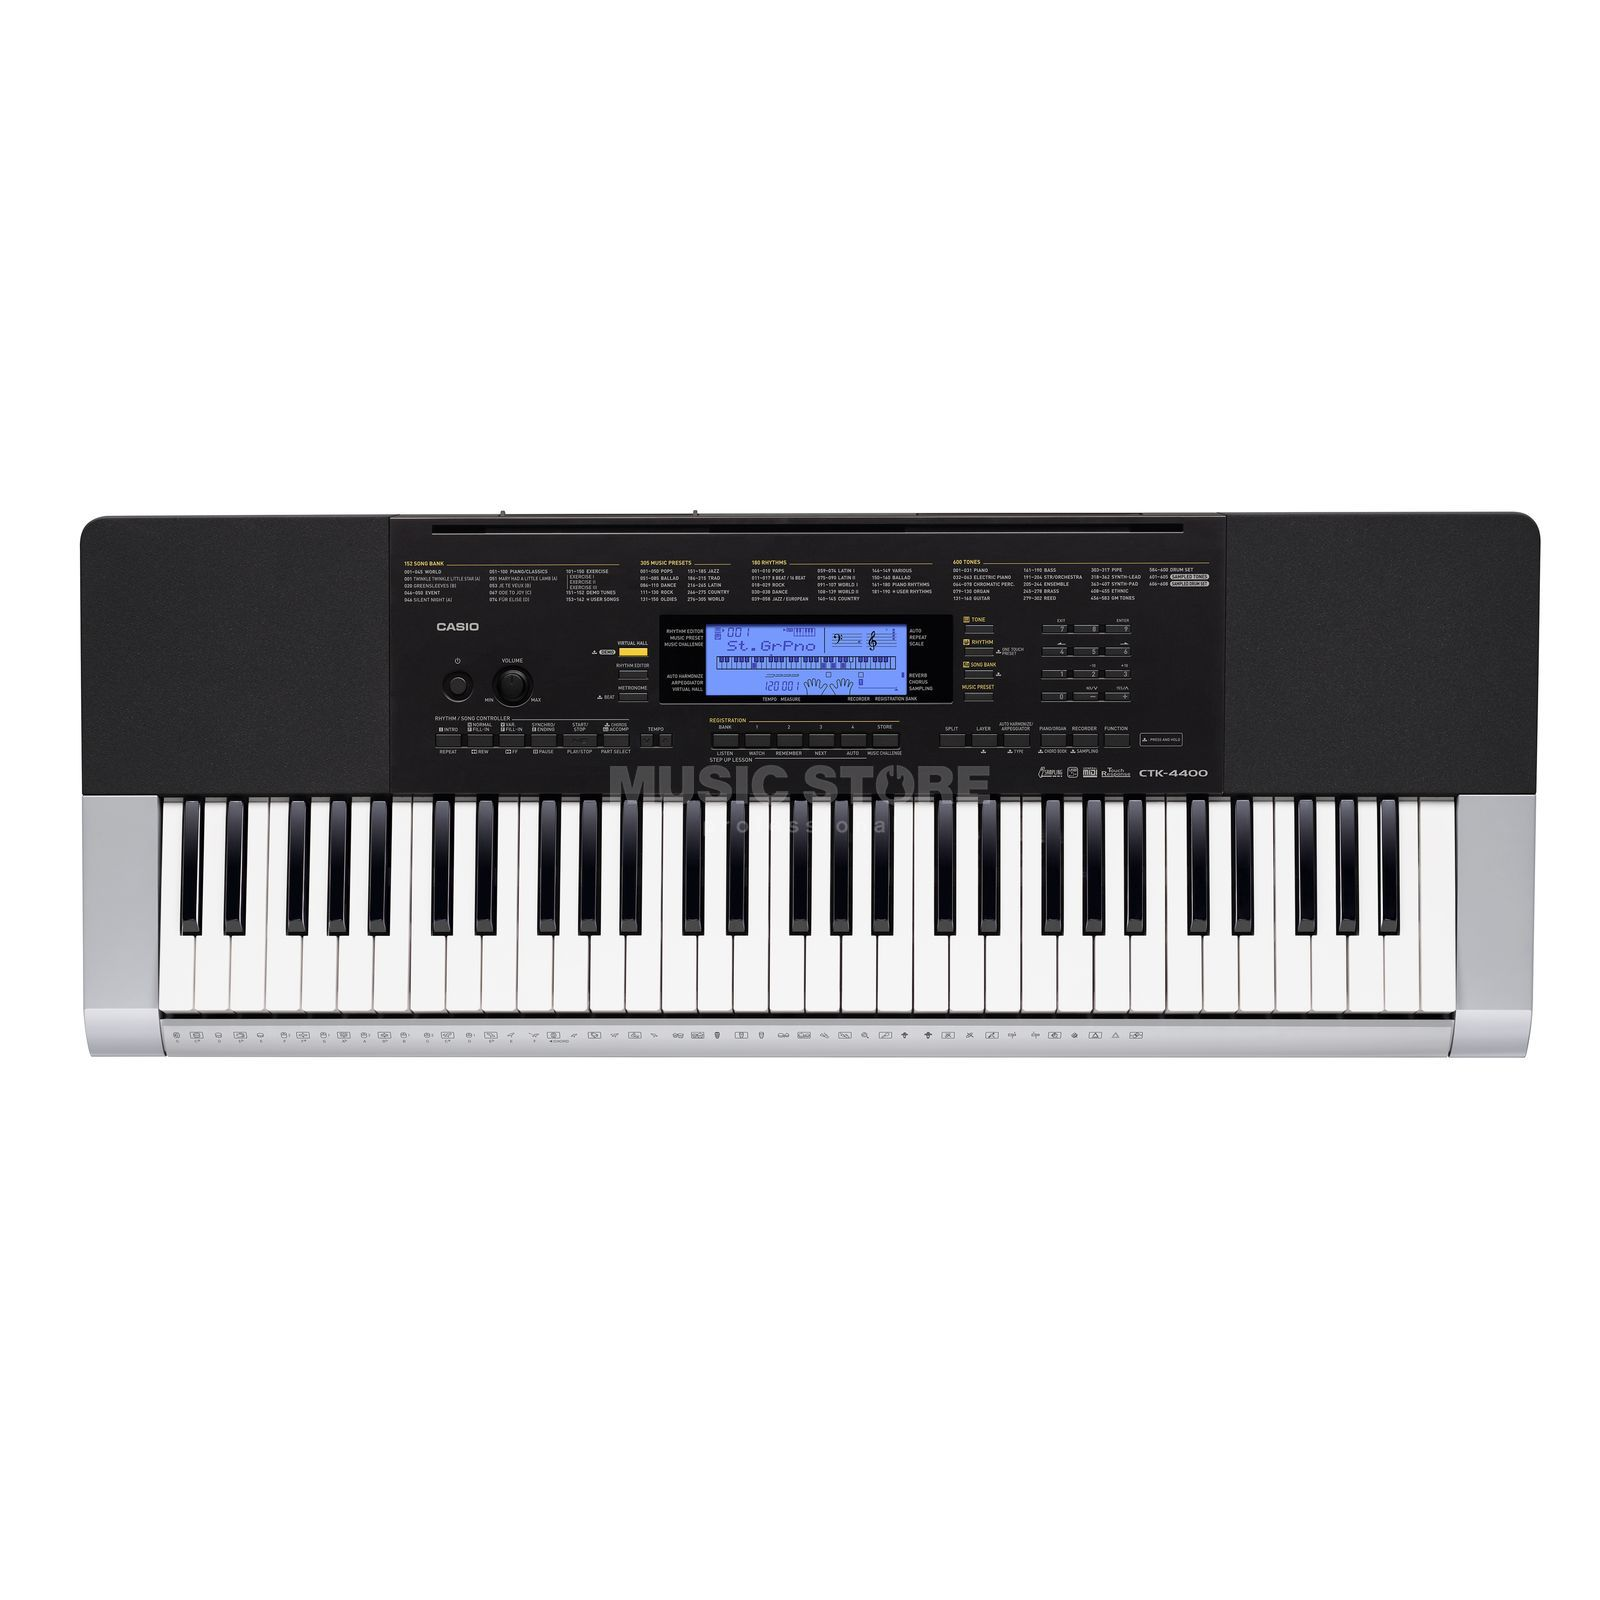 Casio CTK-4400 Digital Keyboard Product Image